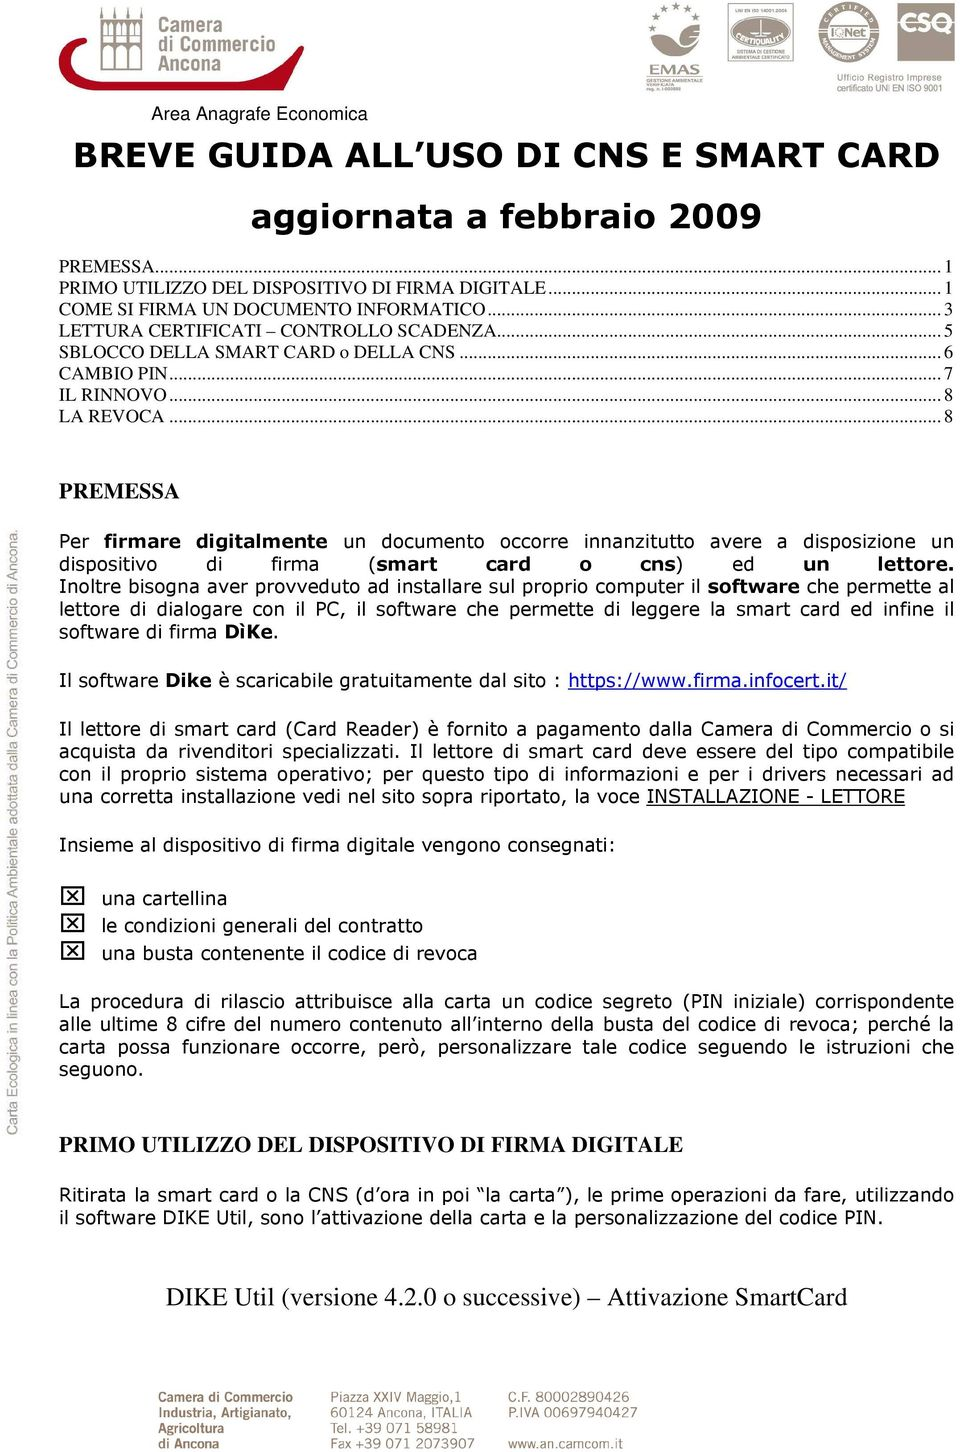 .. 8 PREMESSA Per firmare digitalmente un documento occorre innanzitutto avere a disposizione un dispositivo di firma (smart card o cns) ed un lettore.